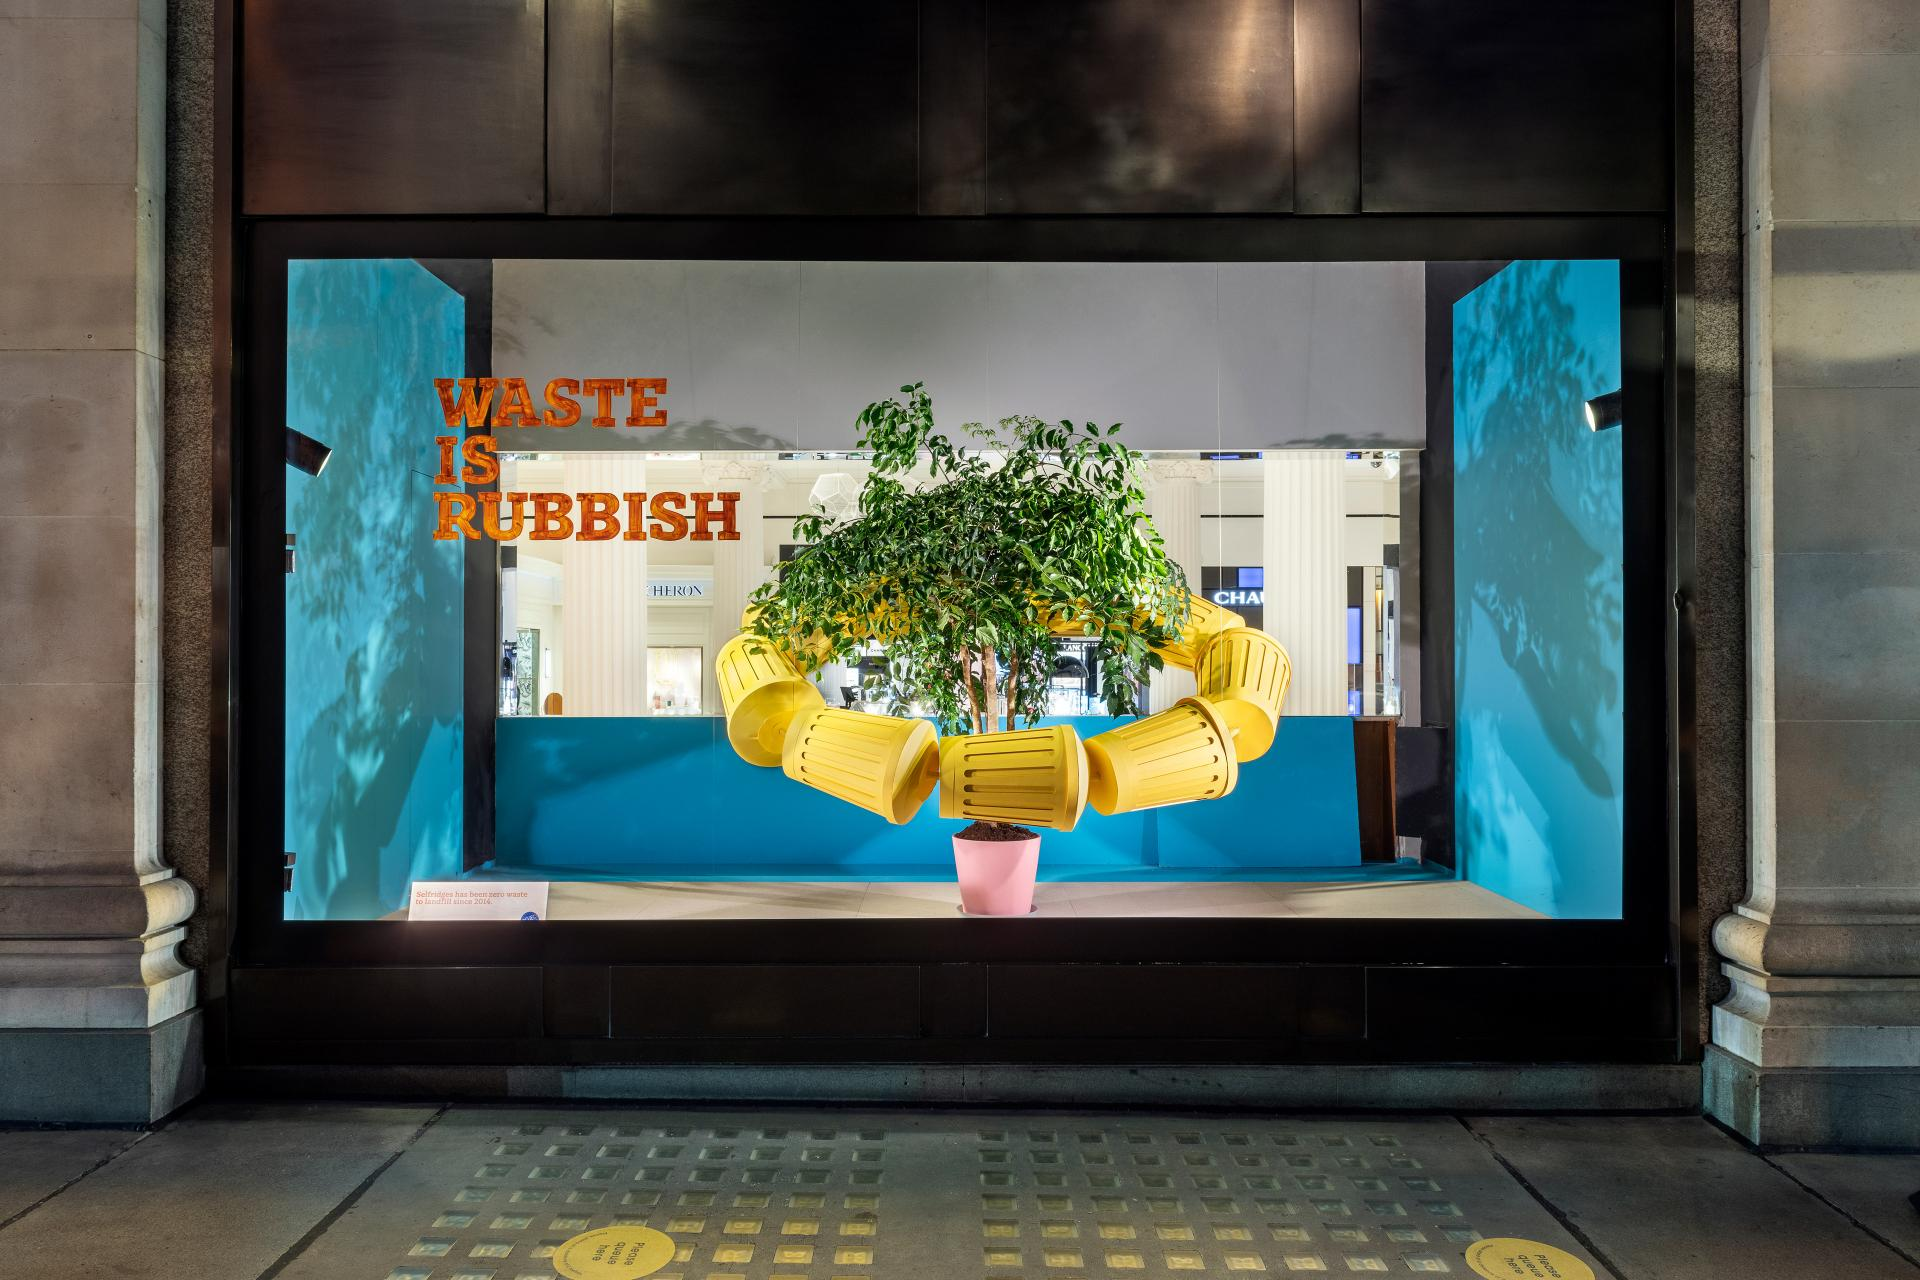 selfridges sustainability window display | The why, wow and how of sustainability in Visual Merchandising | Studio Rêver | Design Blog